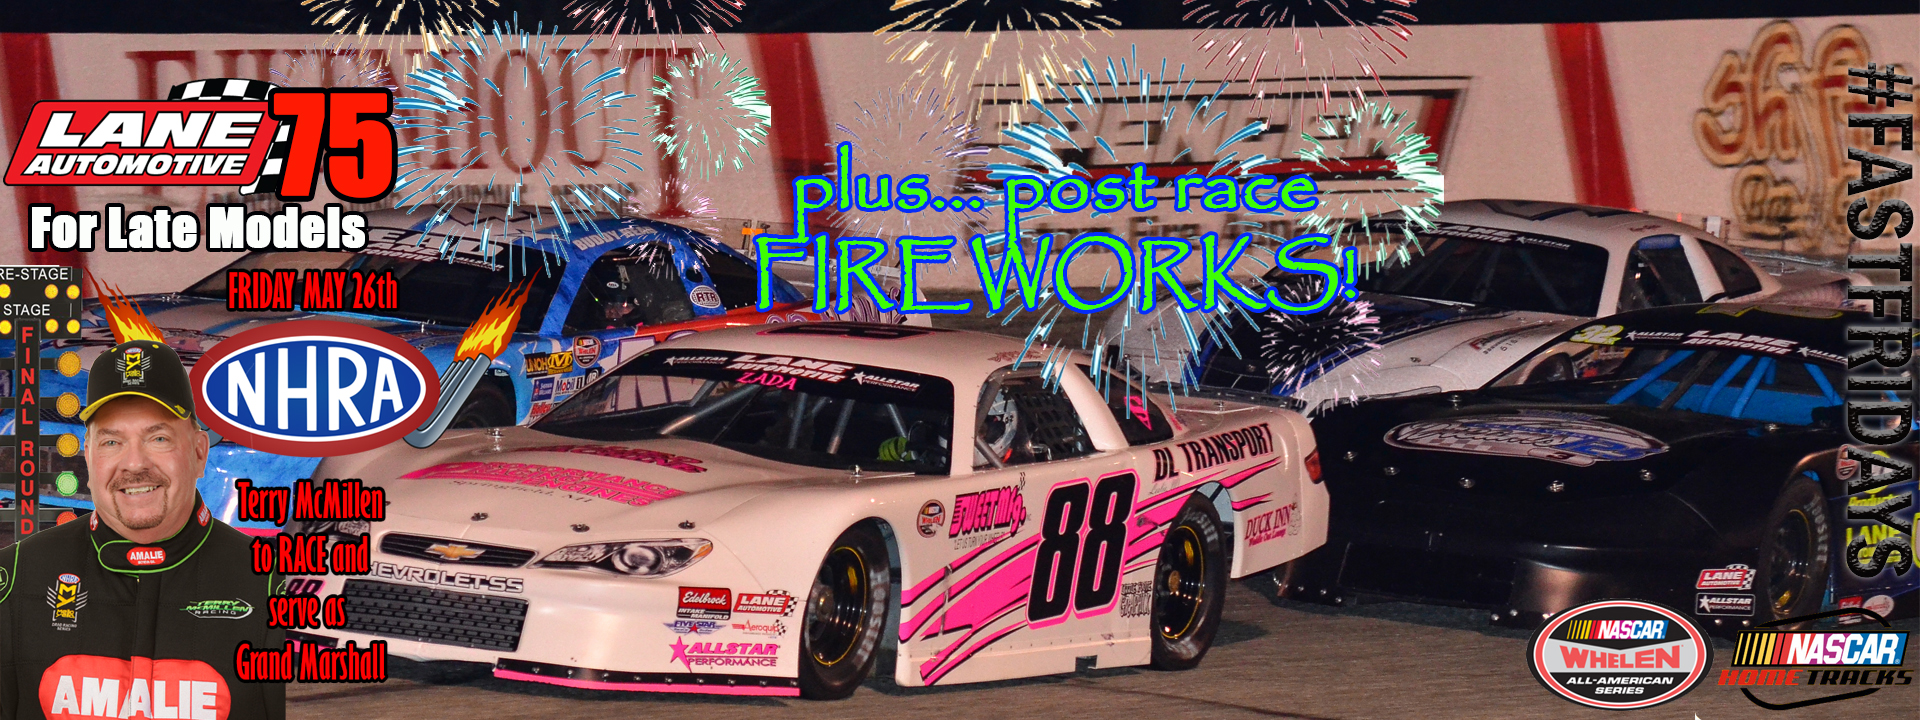 5 in 1 NASCAR Racing Program - NHRA Night @ the Zoo Featuring Terry McMillen